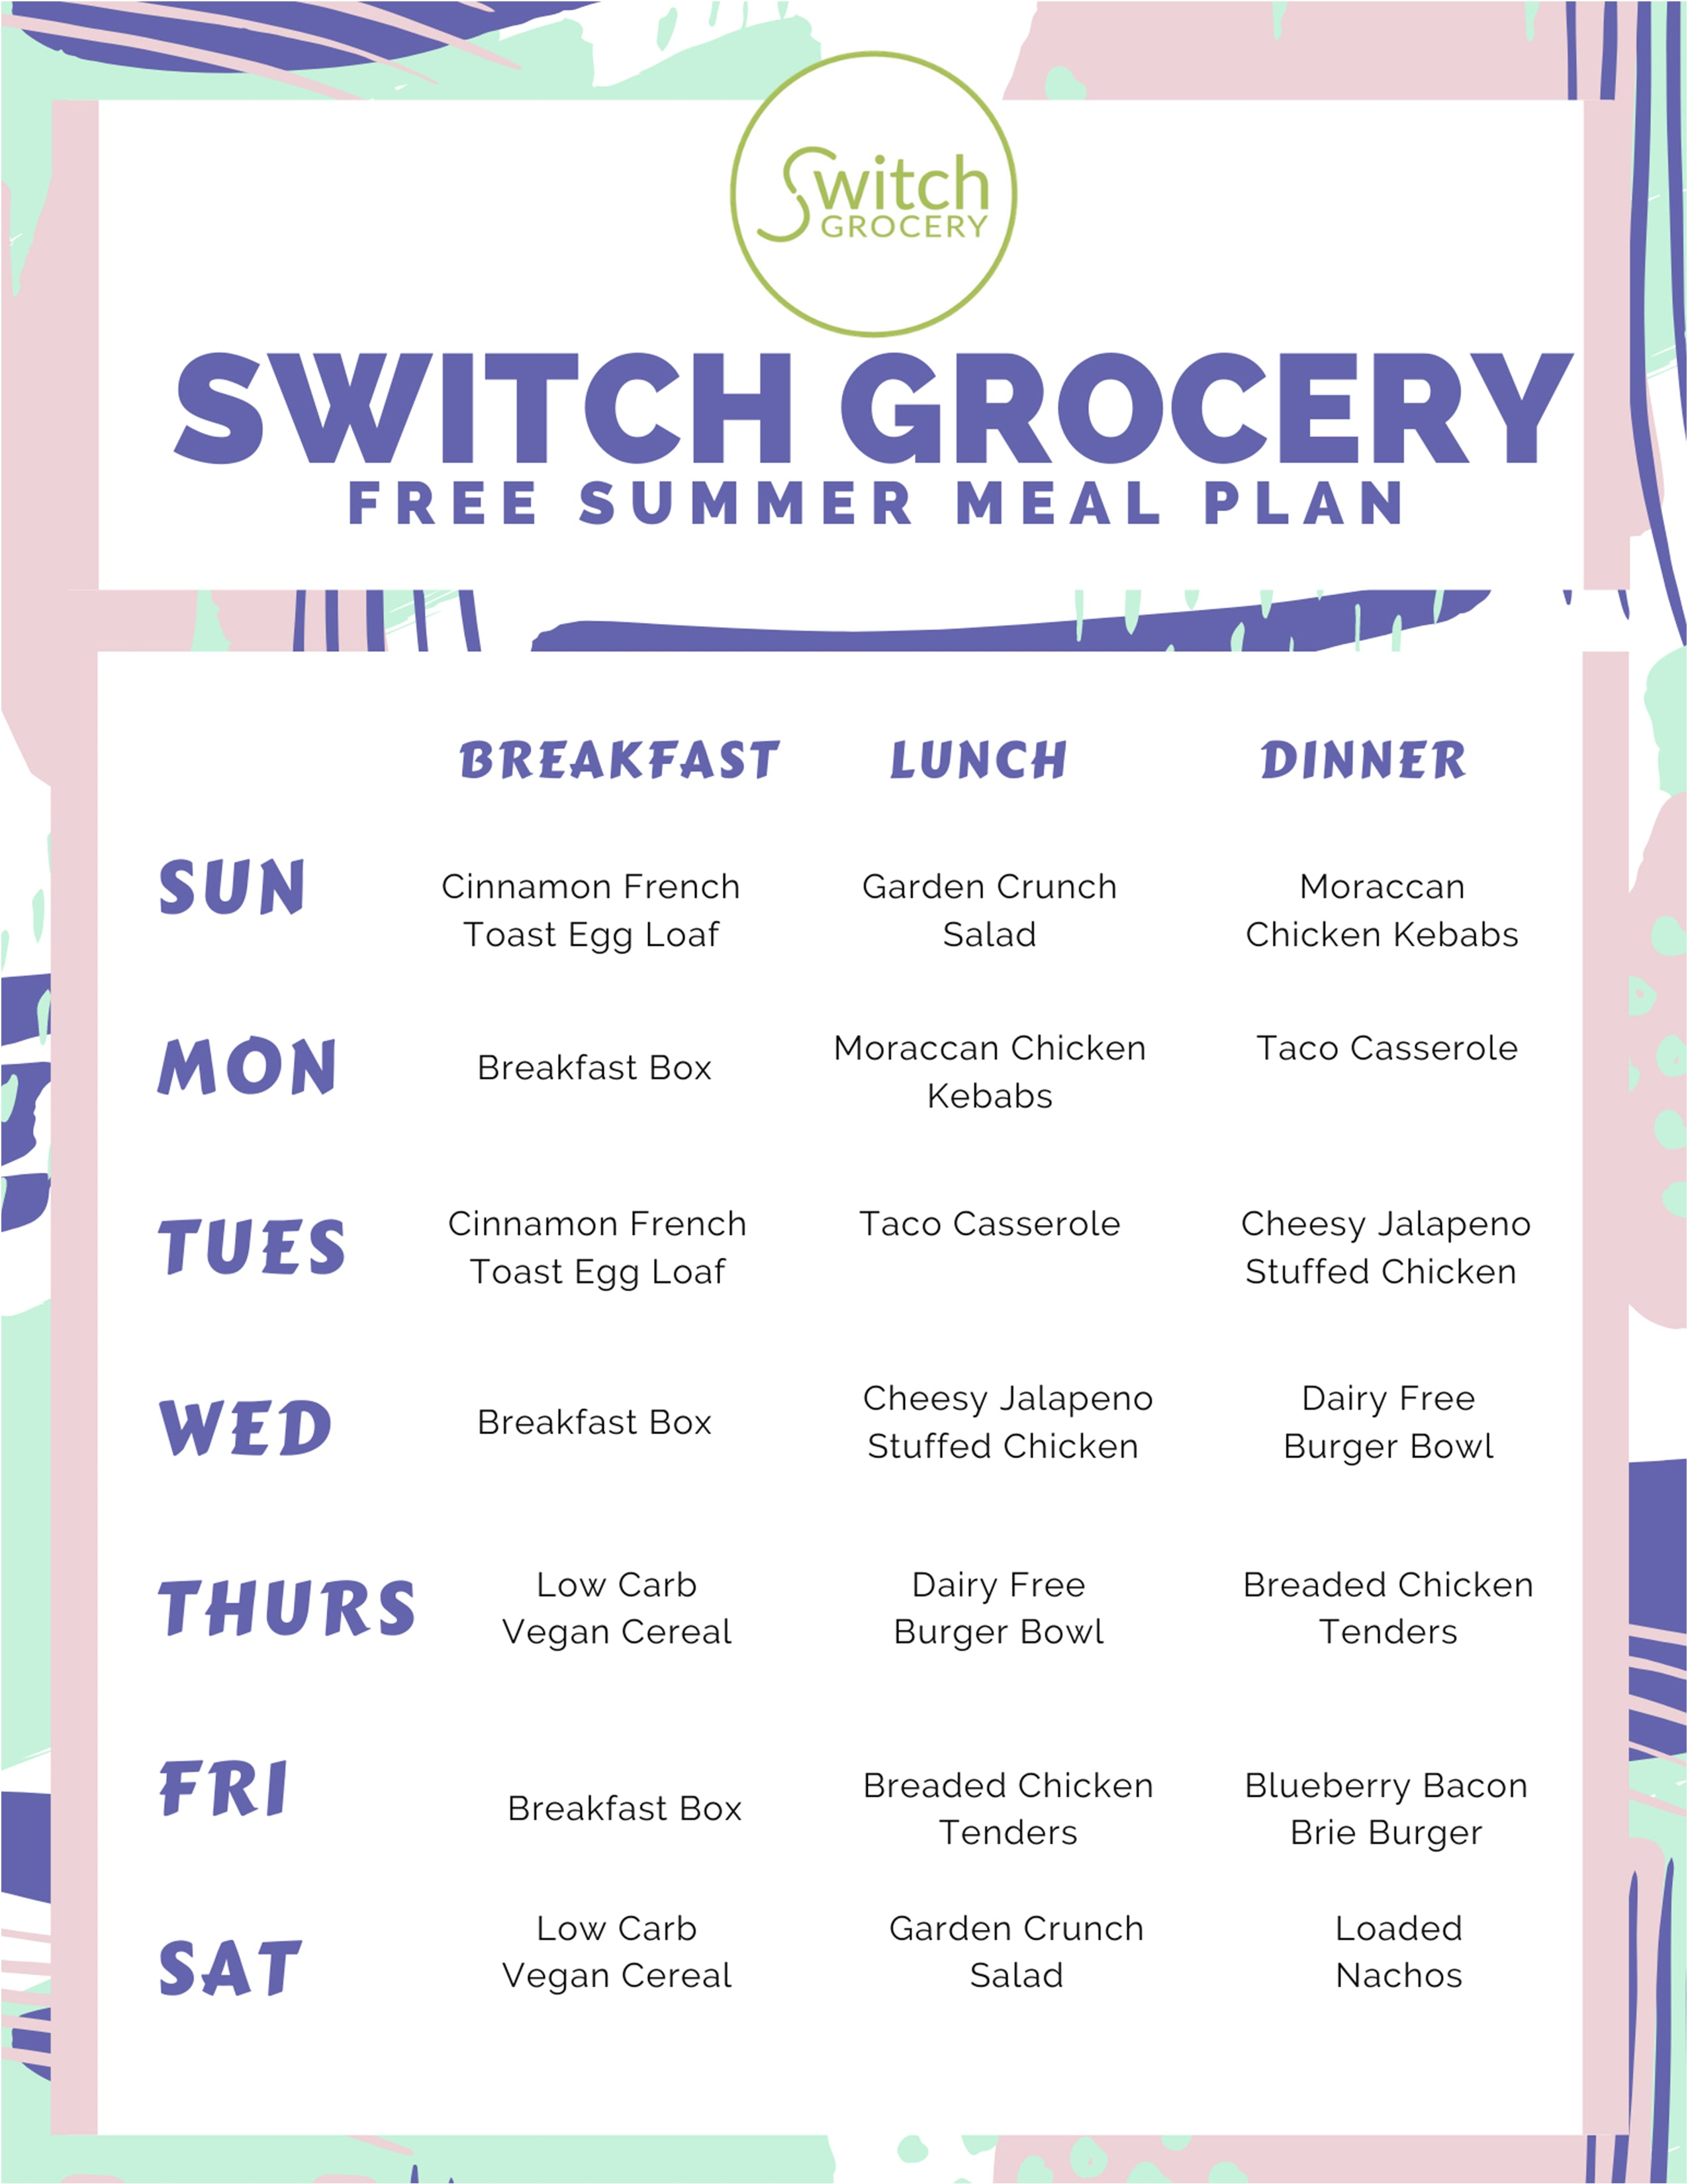 free summer Keto meal plan on SwitchGrocery Canada made by Sugar Free Brie